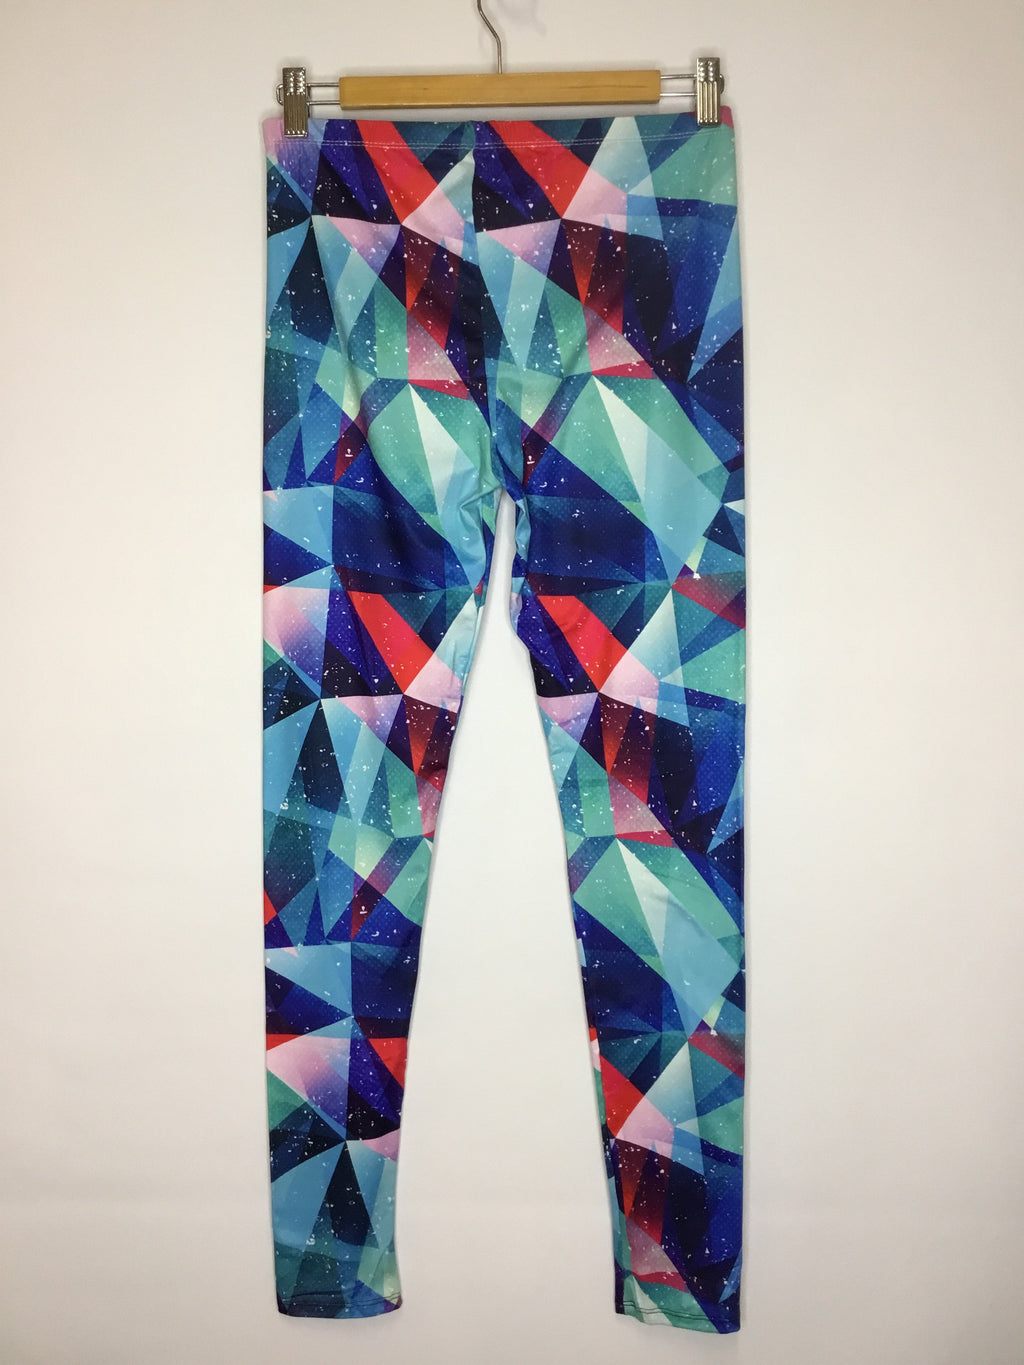 Galactic Geometric Leggings